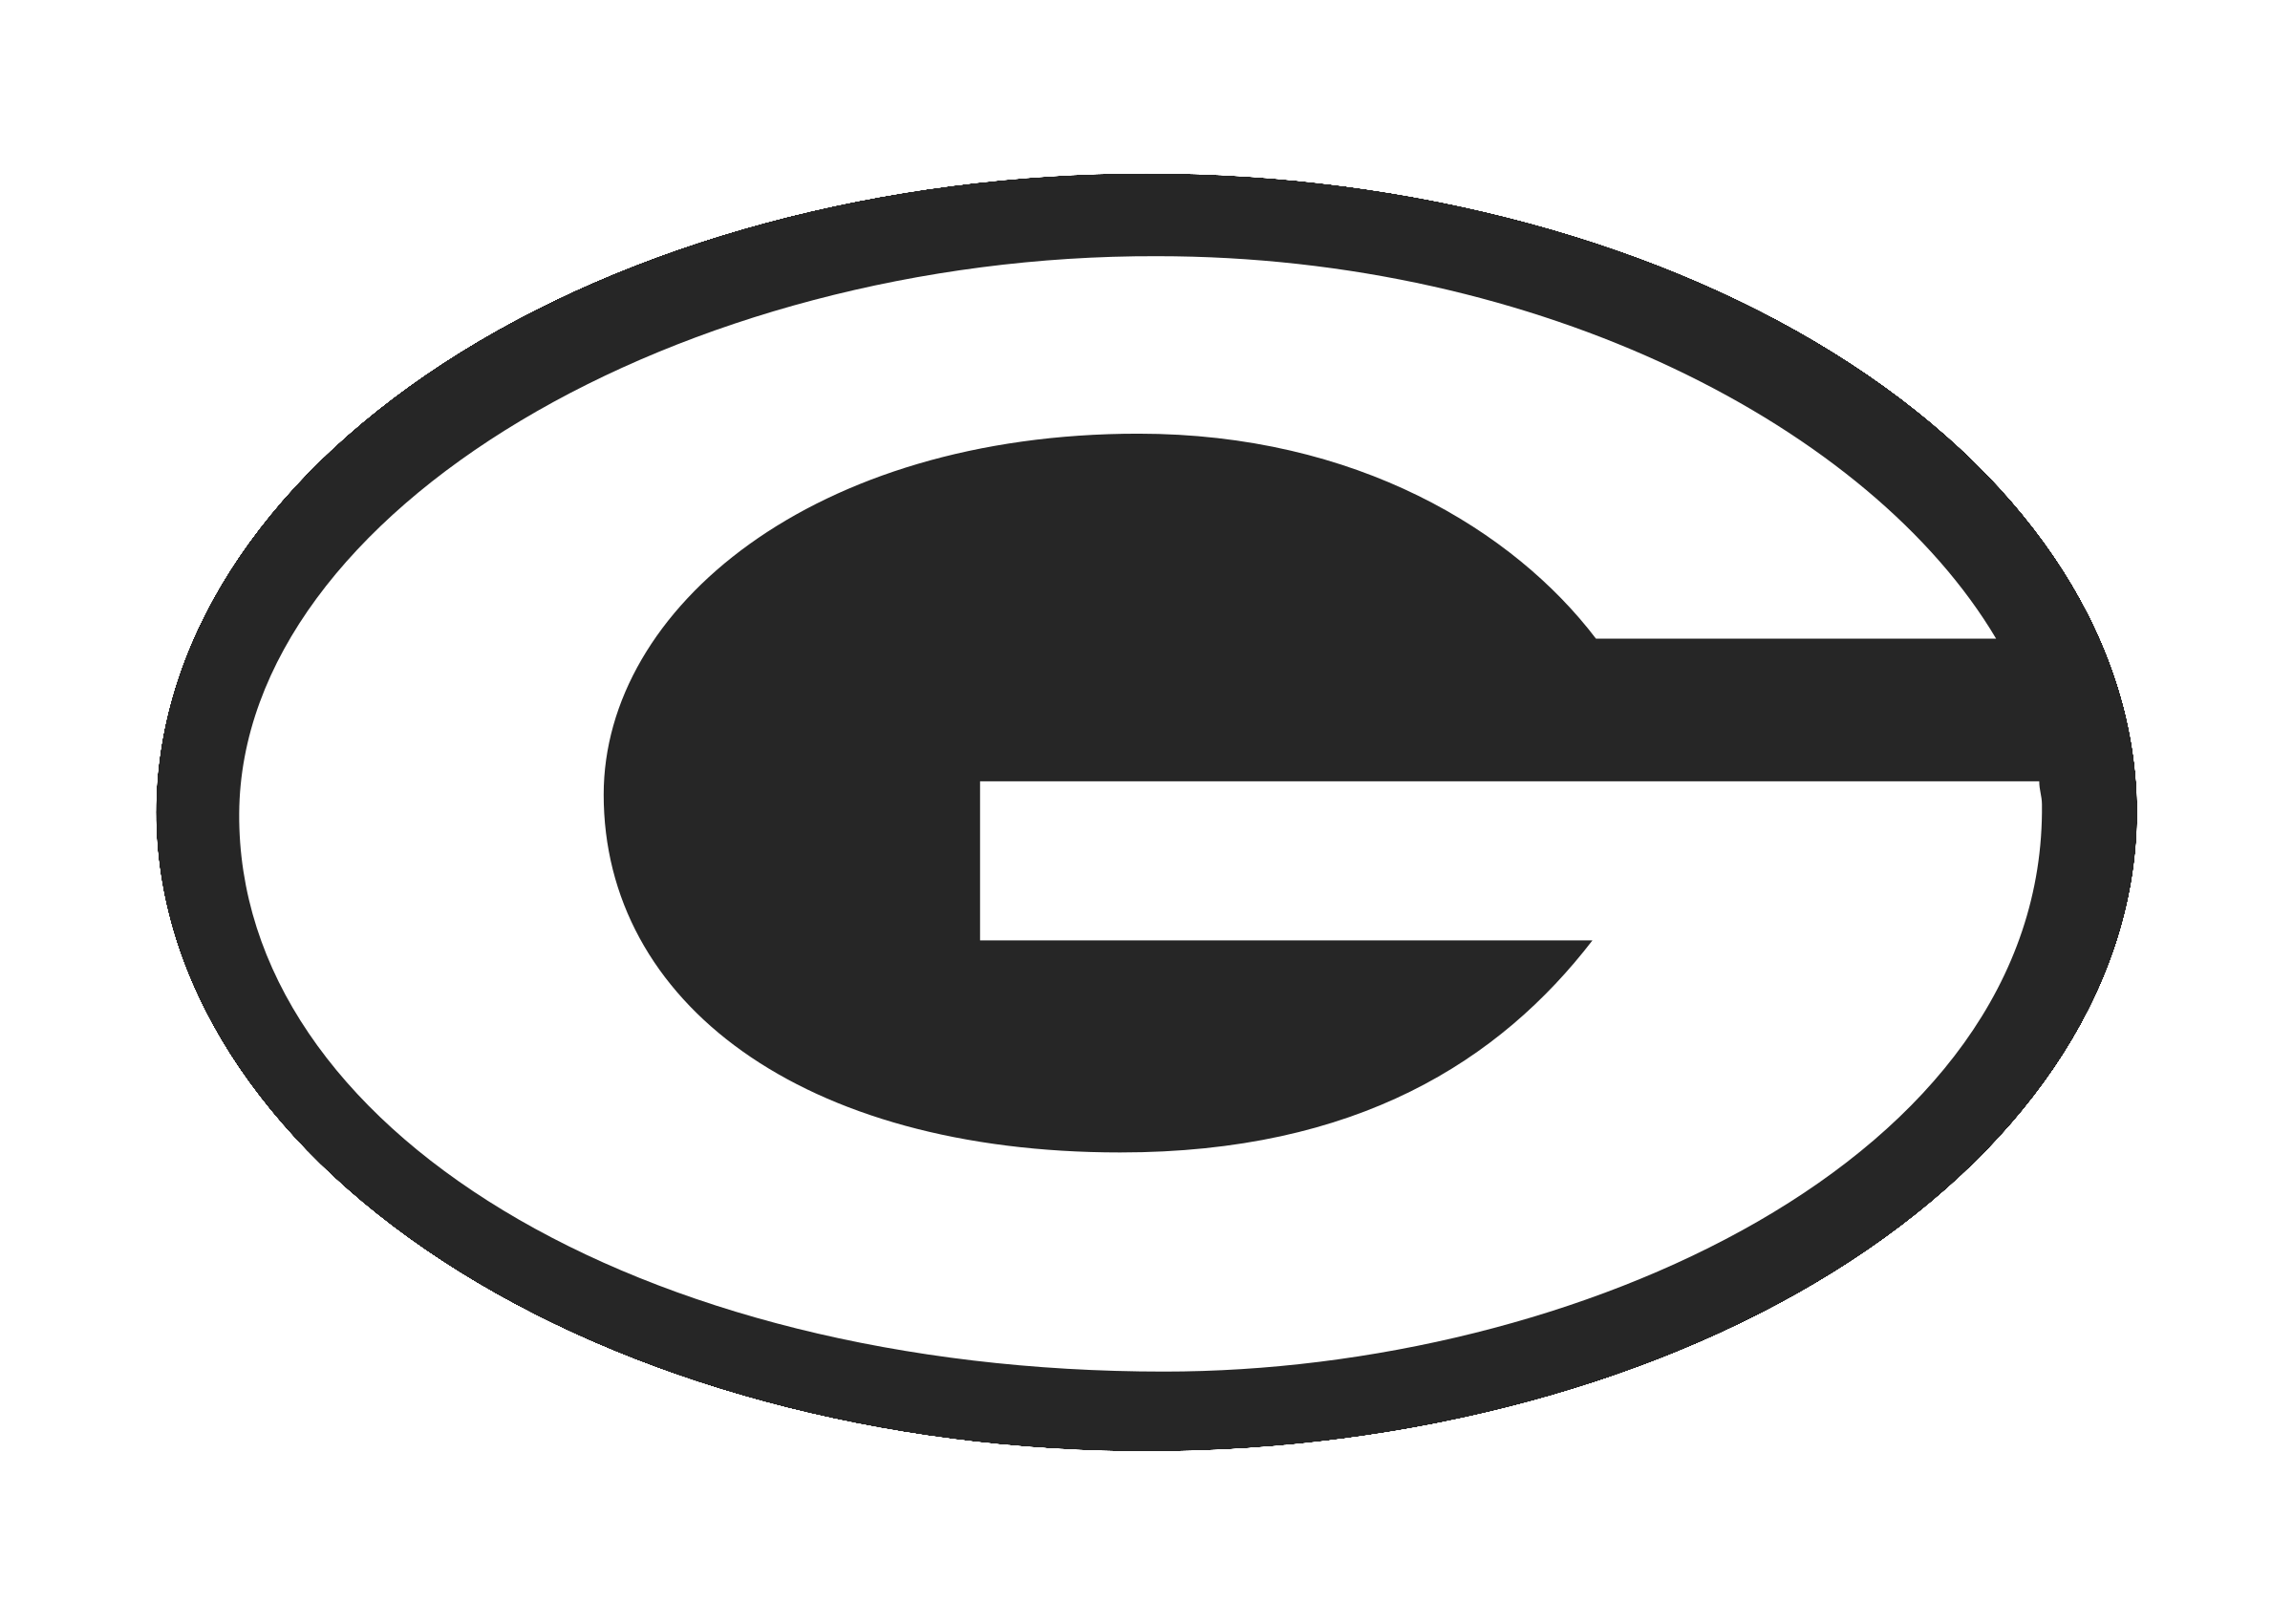 Green Bay Packers Logo Png Transparent Svg Vector Freebie Supply In 2020 Green Bay Packers Logo Green Bay Packers Green Bay